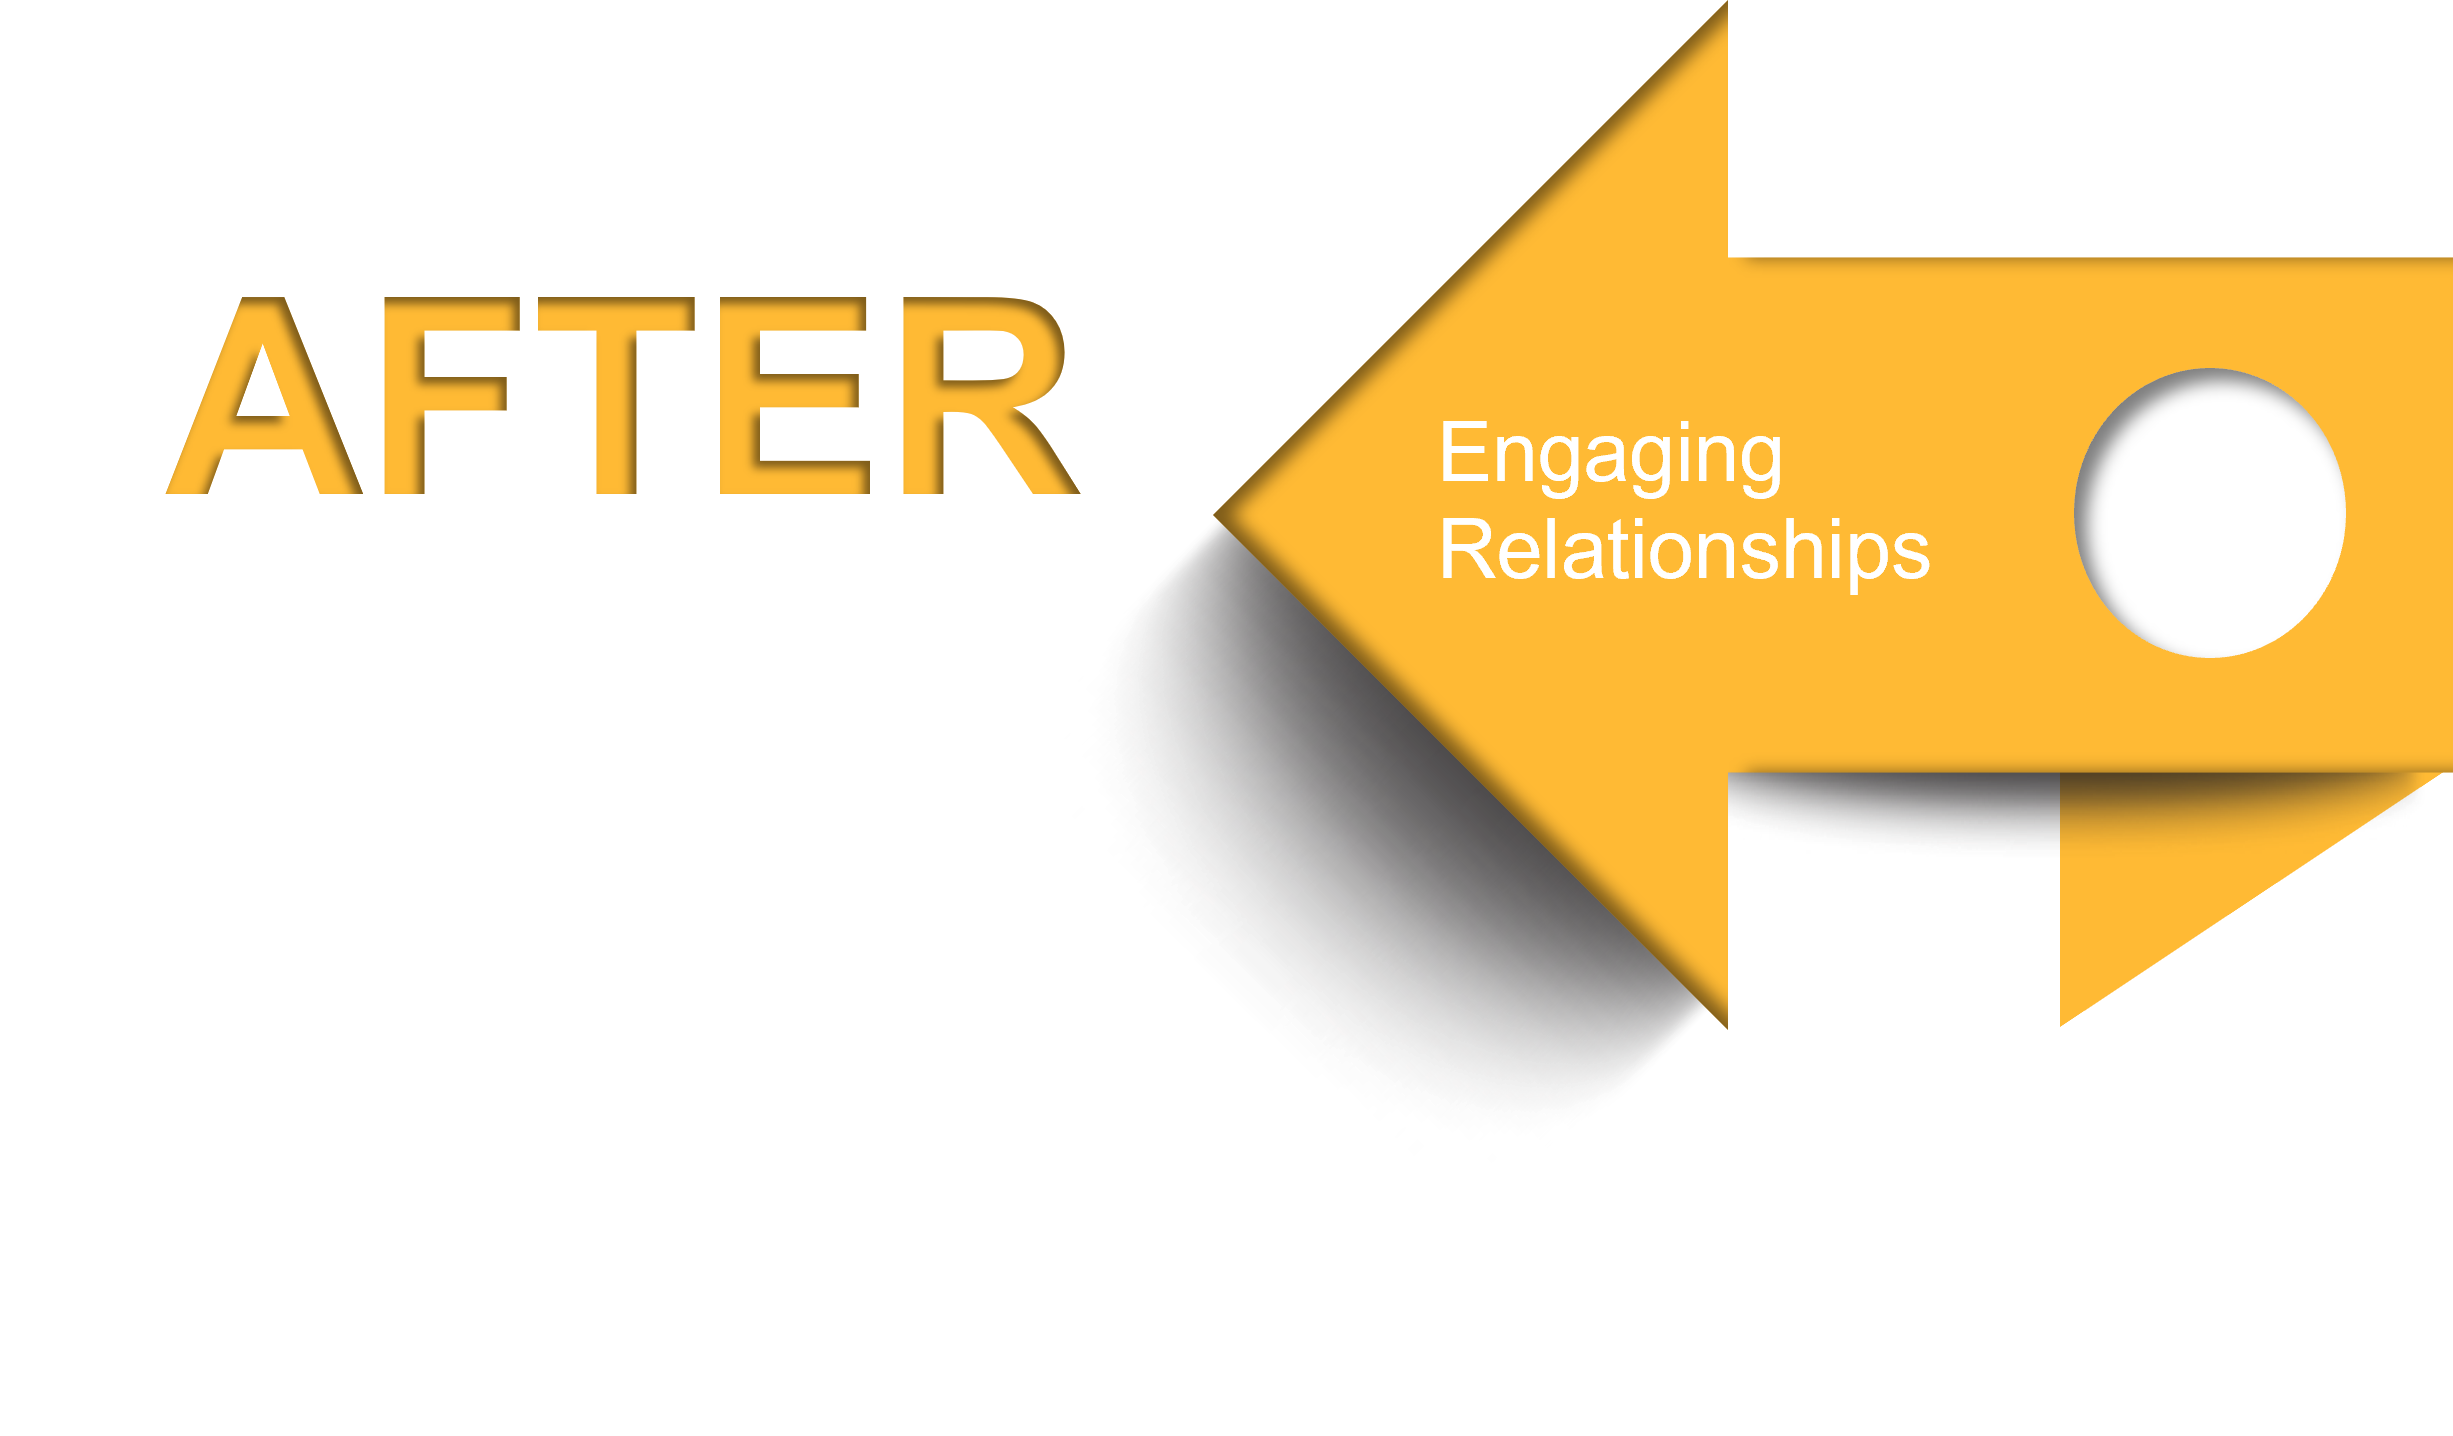 After-engaging-relationships